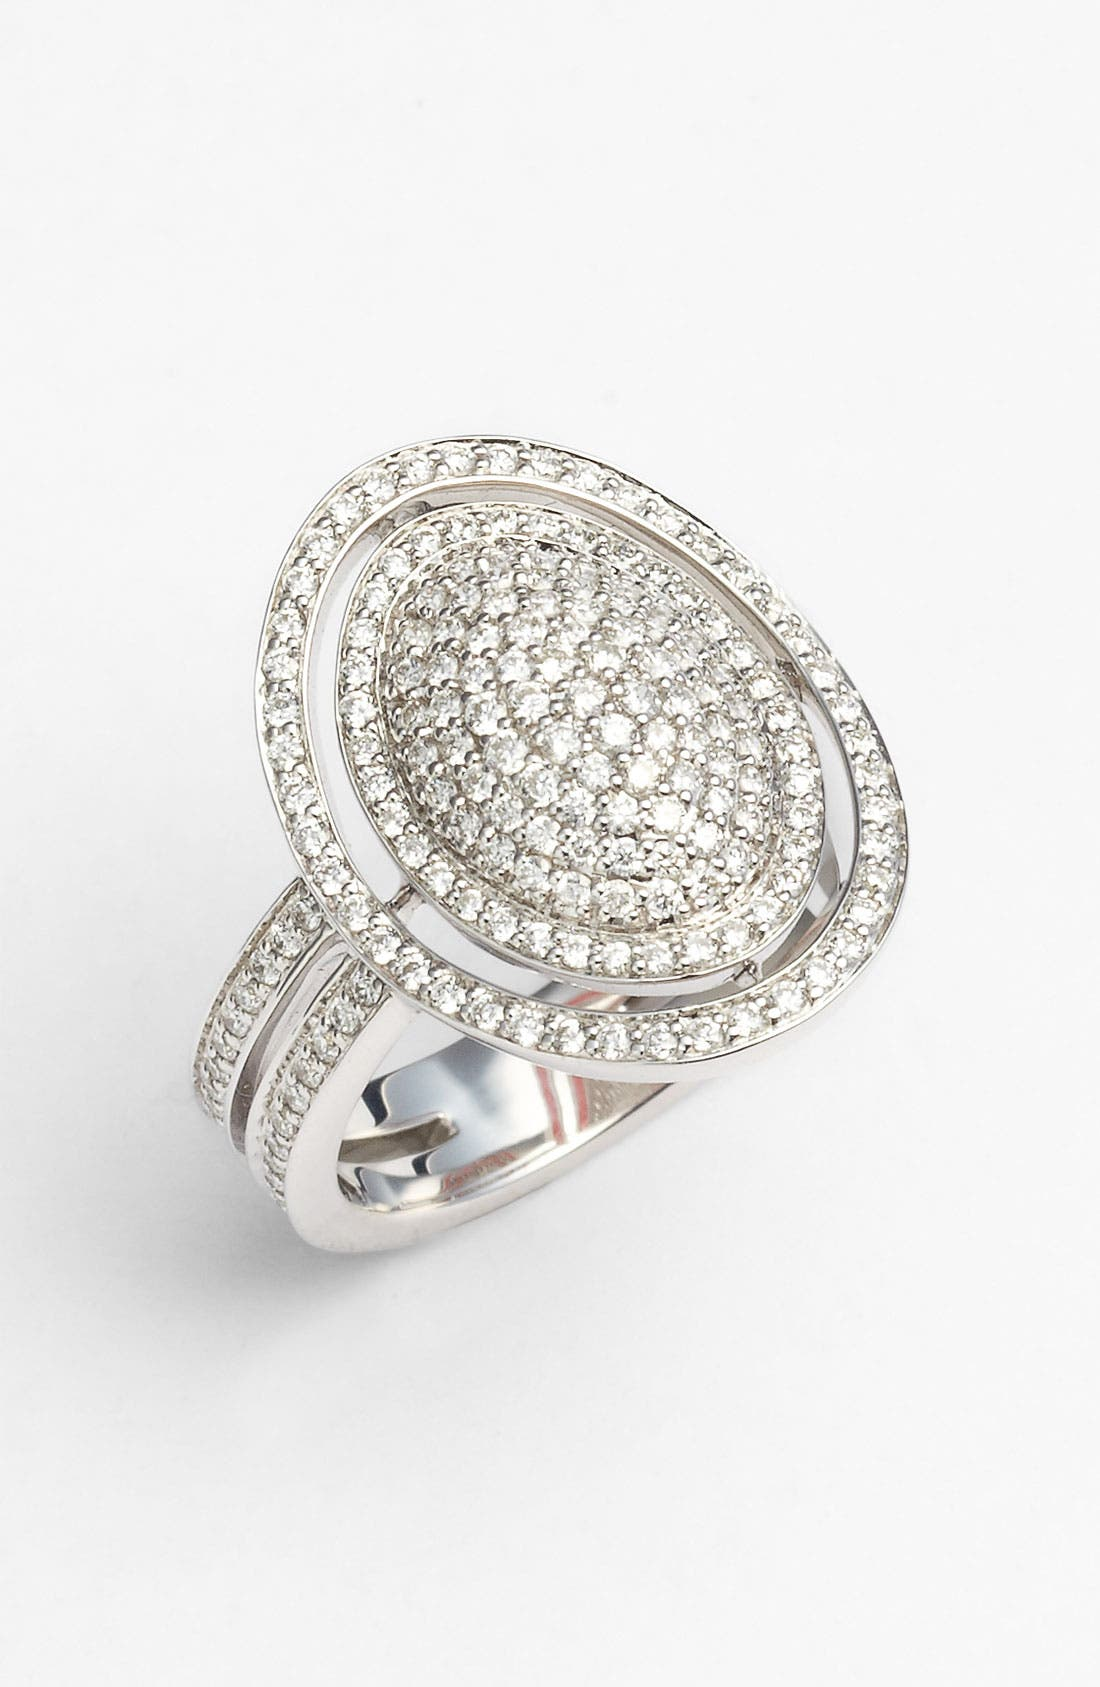 Alternate Image 1 Selected - Ivanka Trump 'Signature' Pavé Diamond Ring